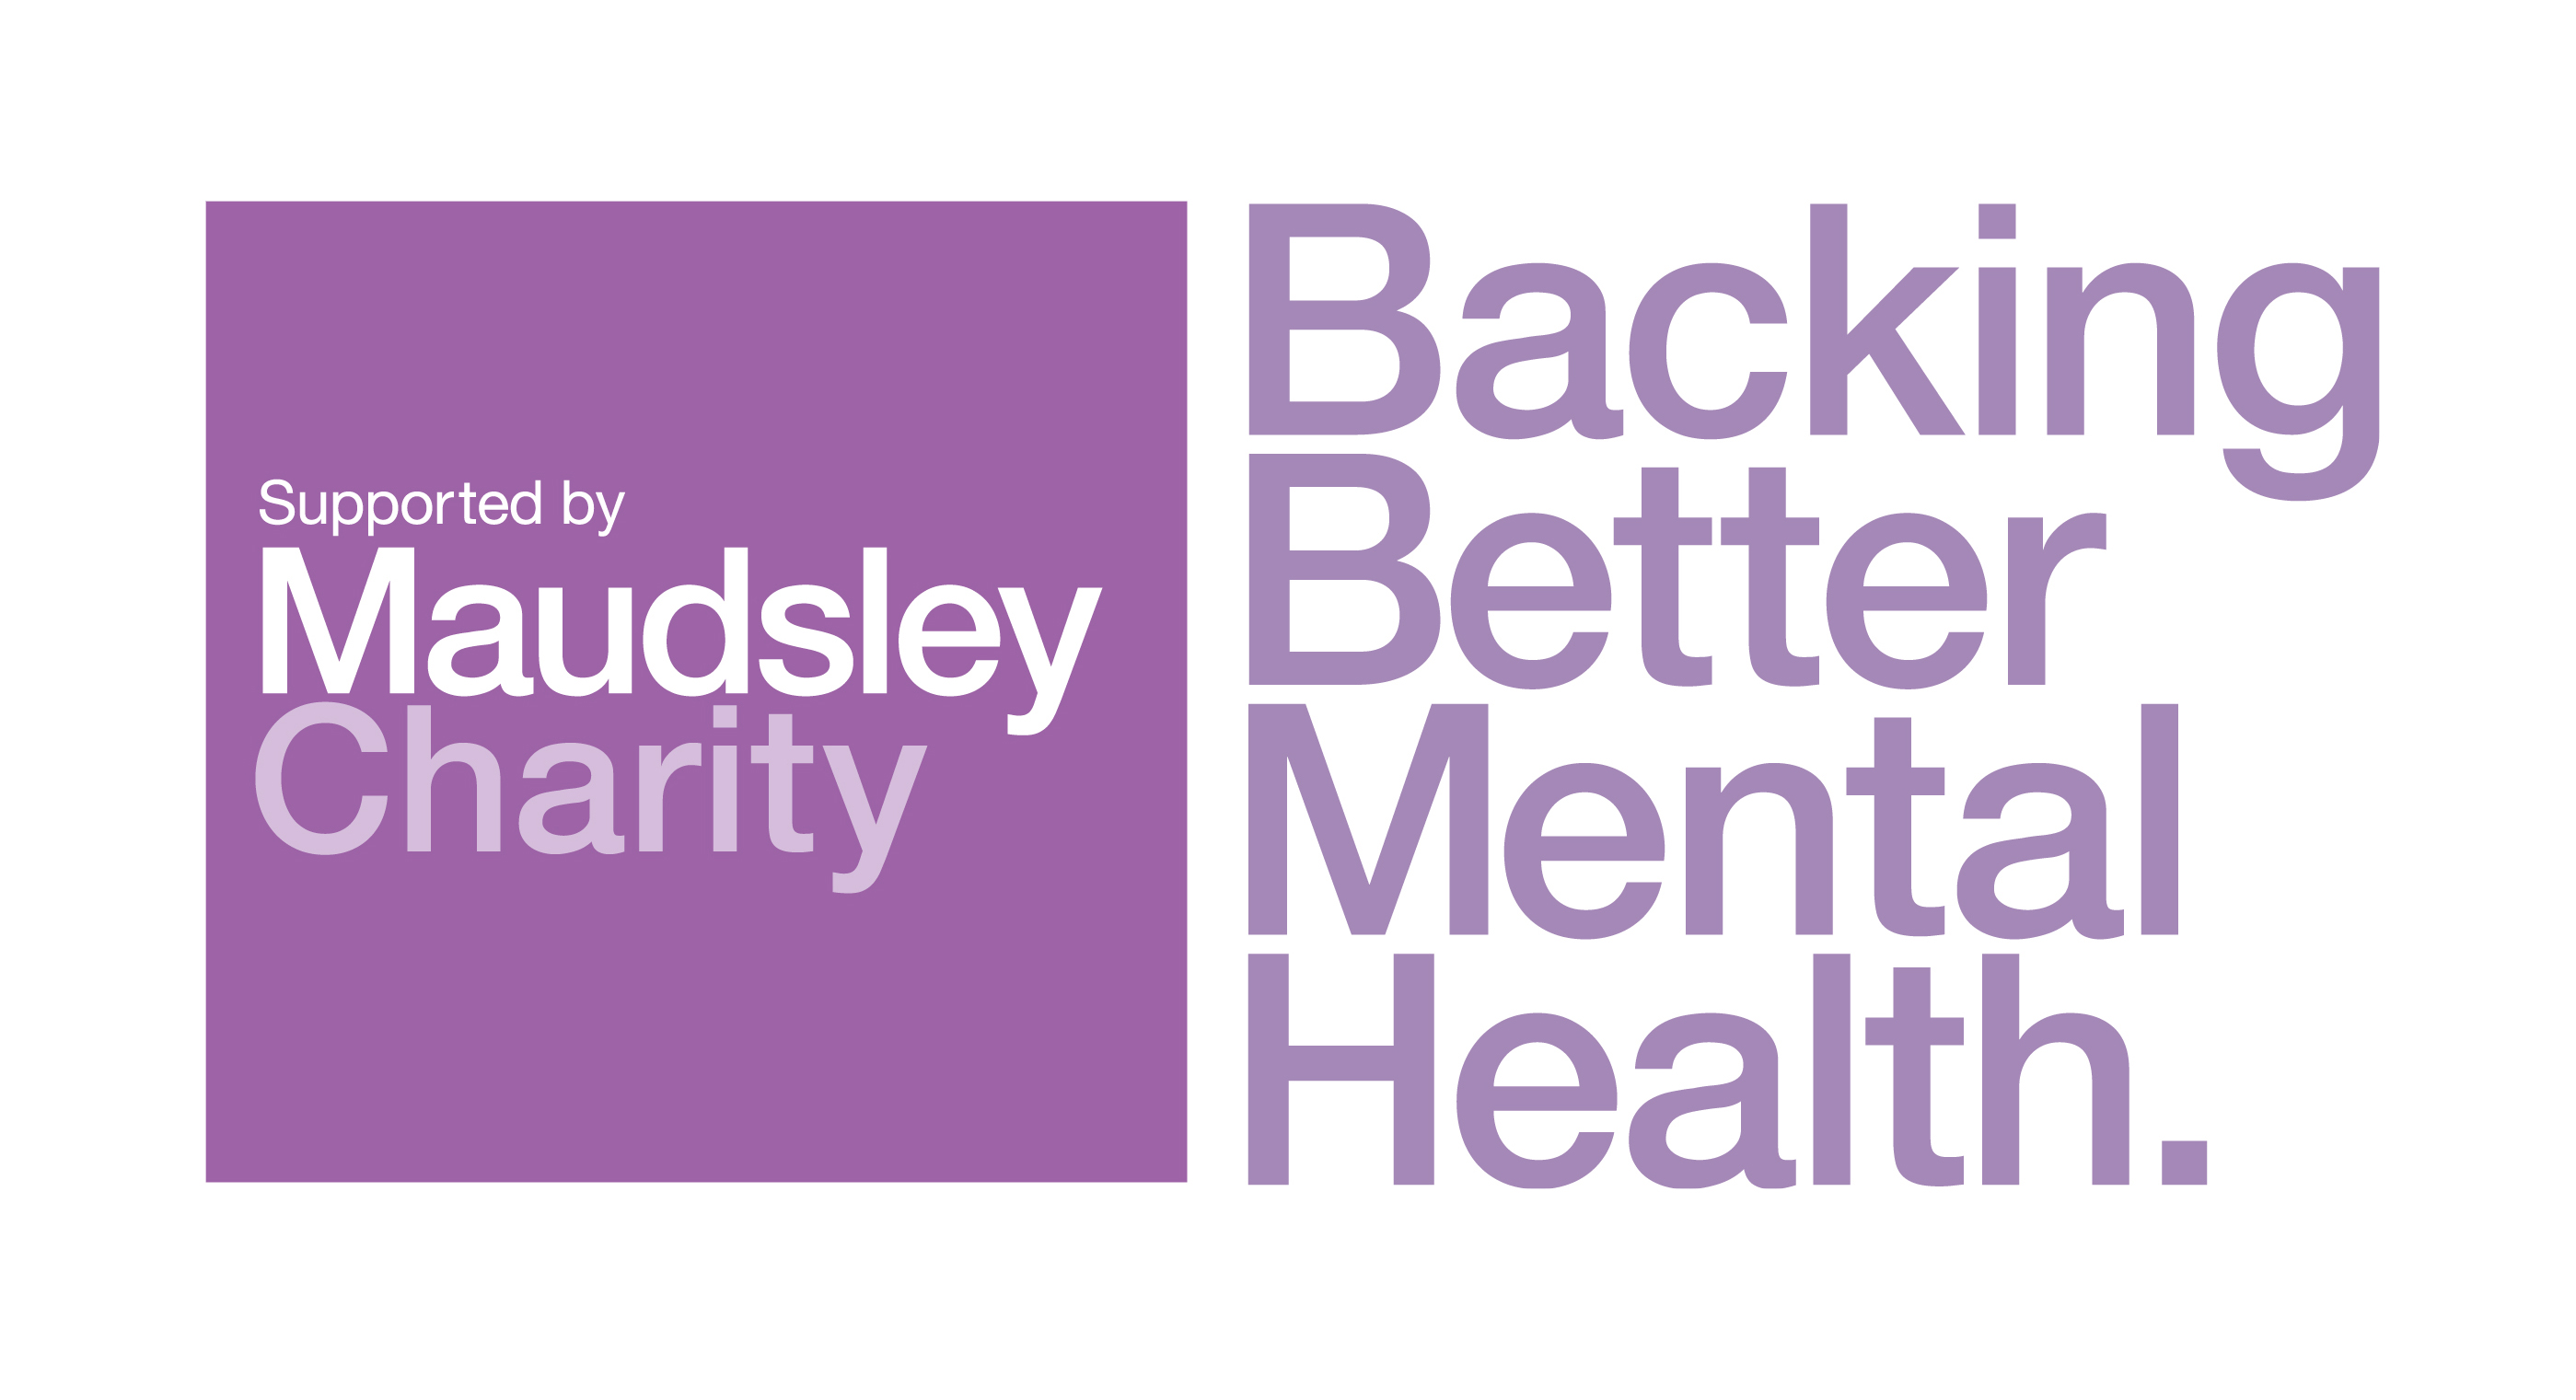 Maudsley Charity Company